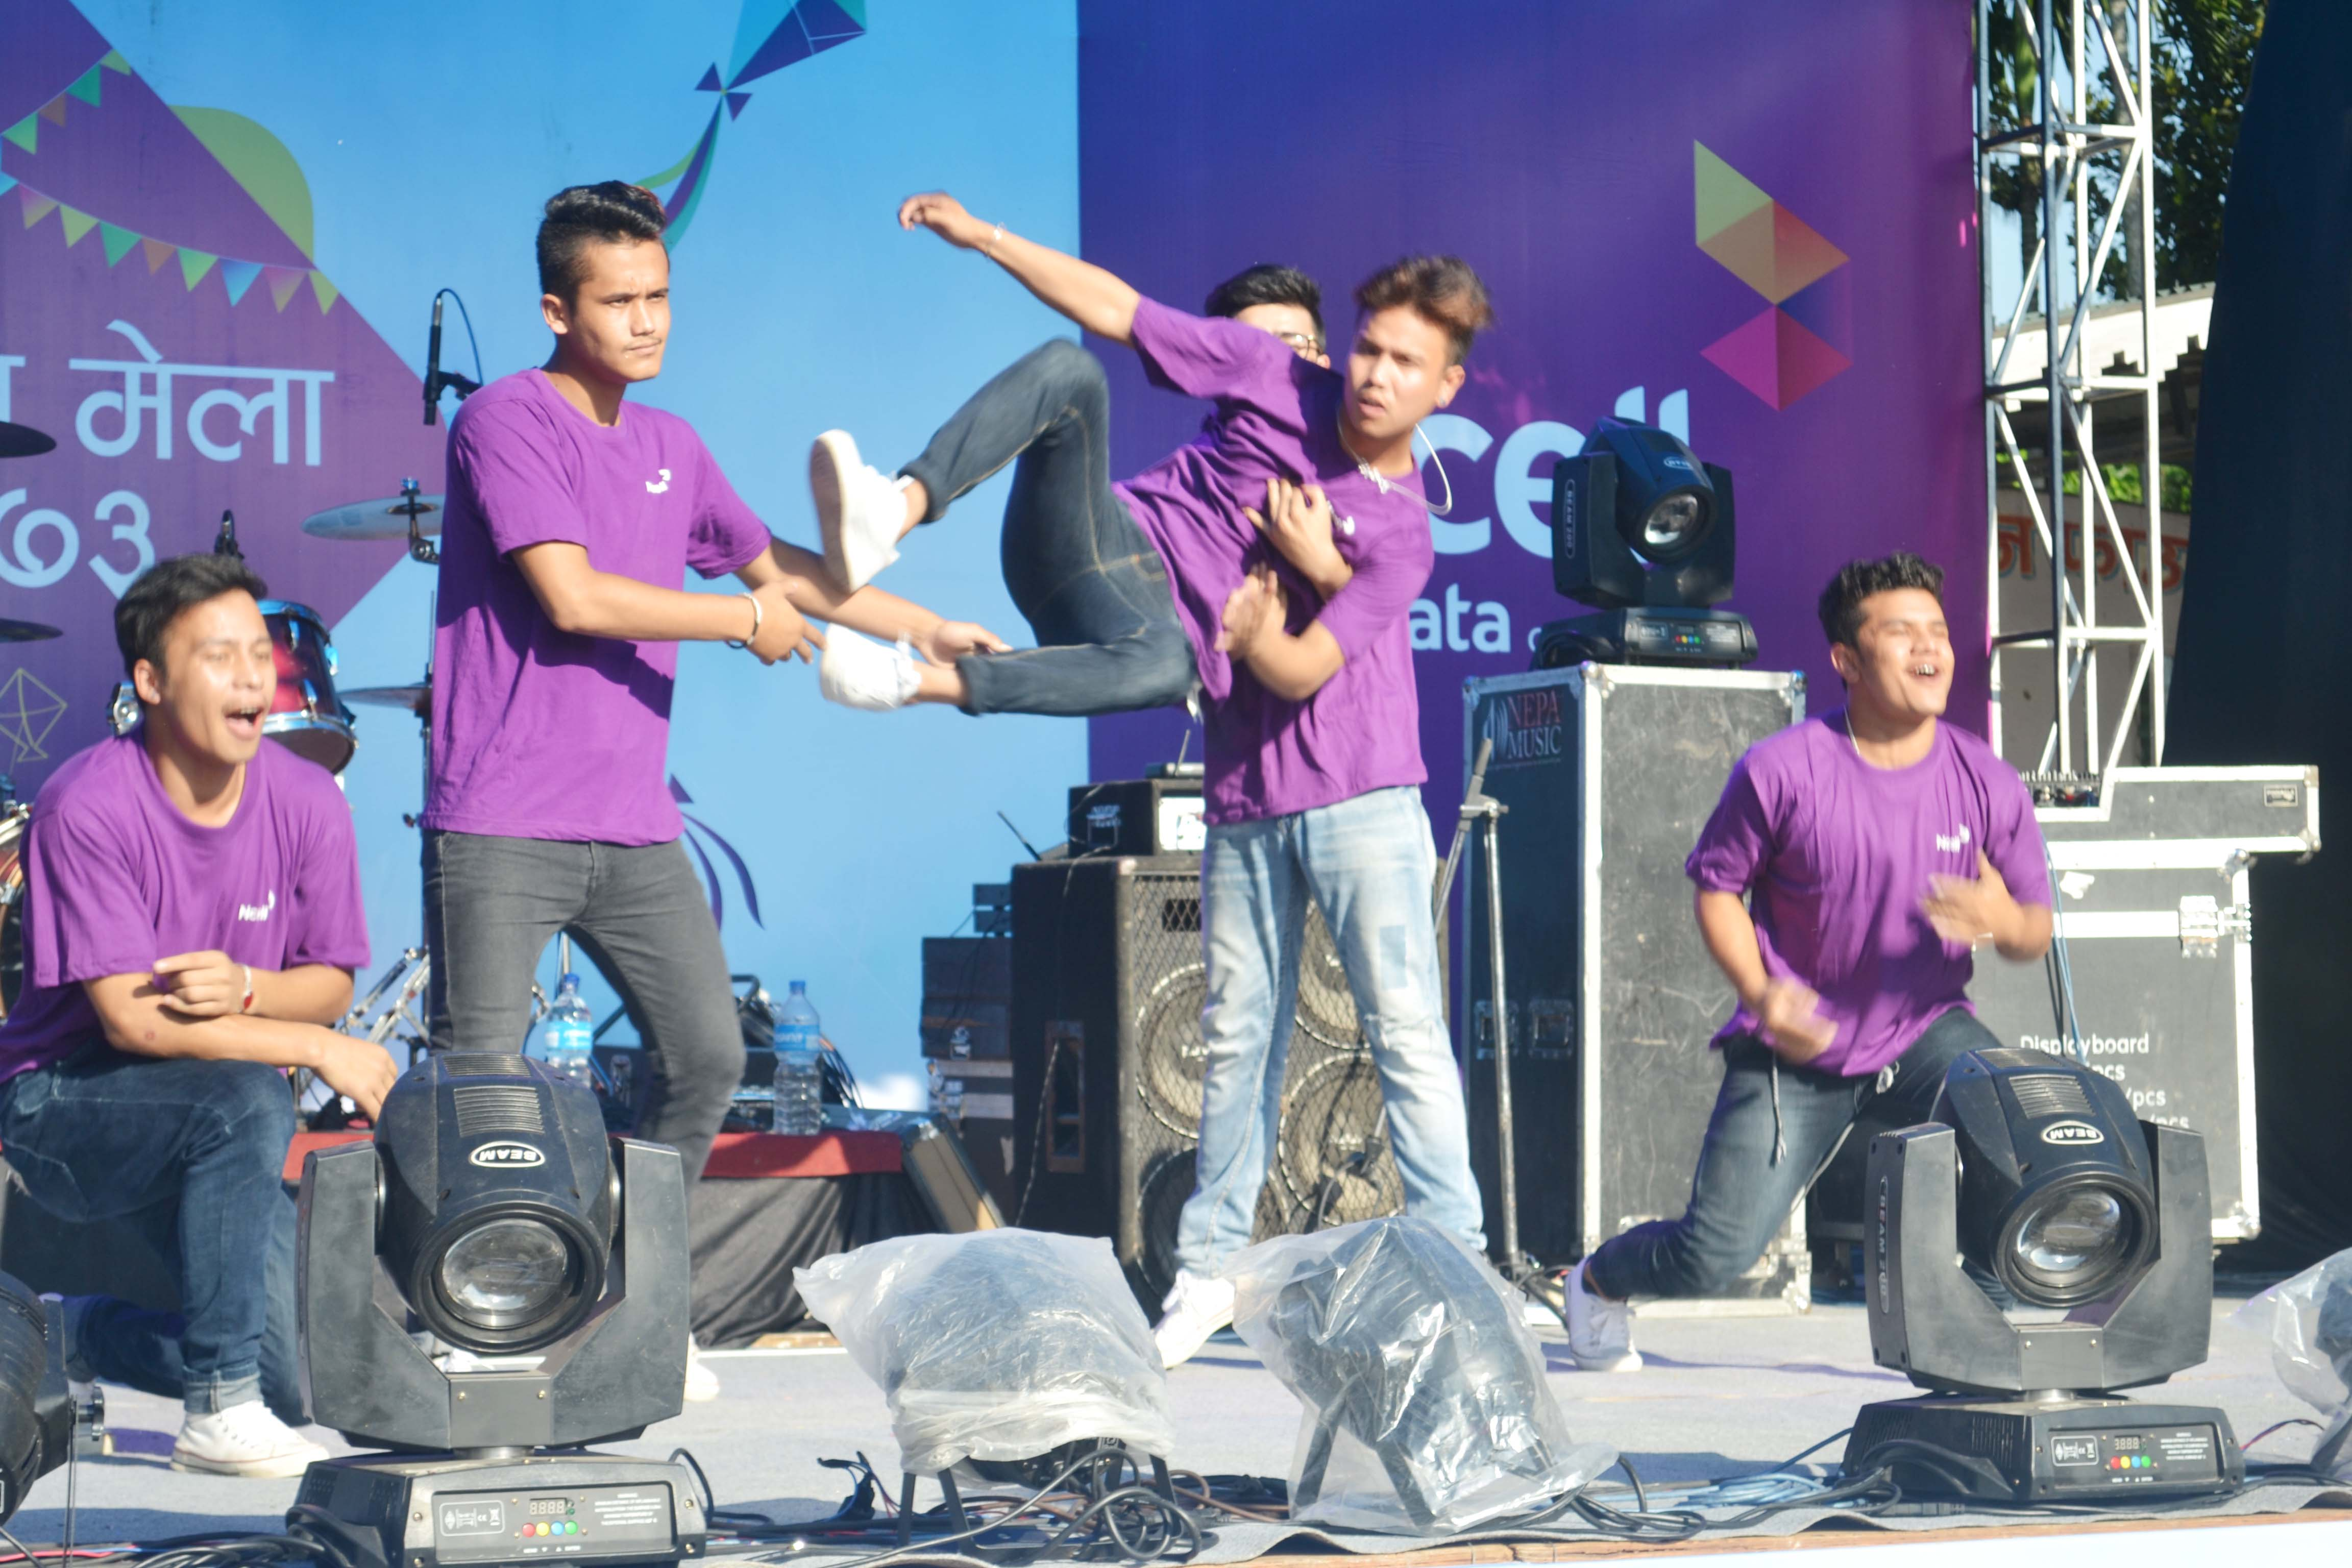 ncell concert jahpa6